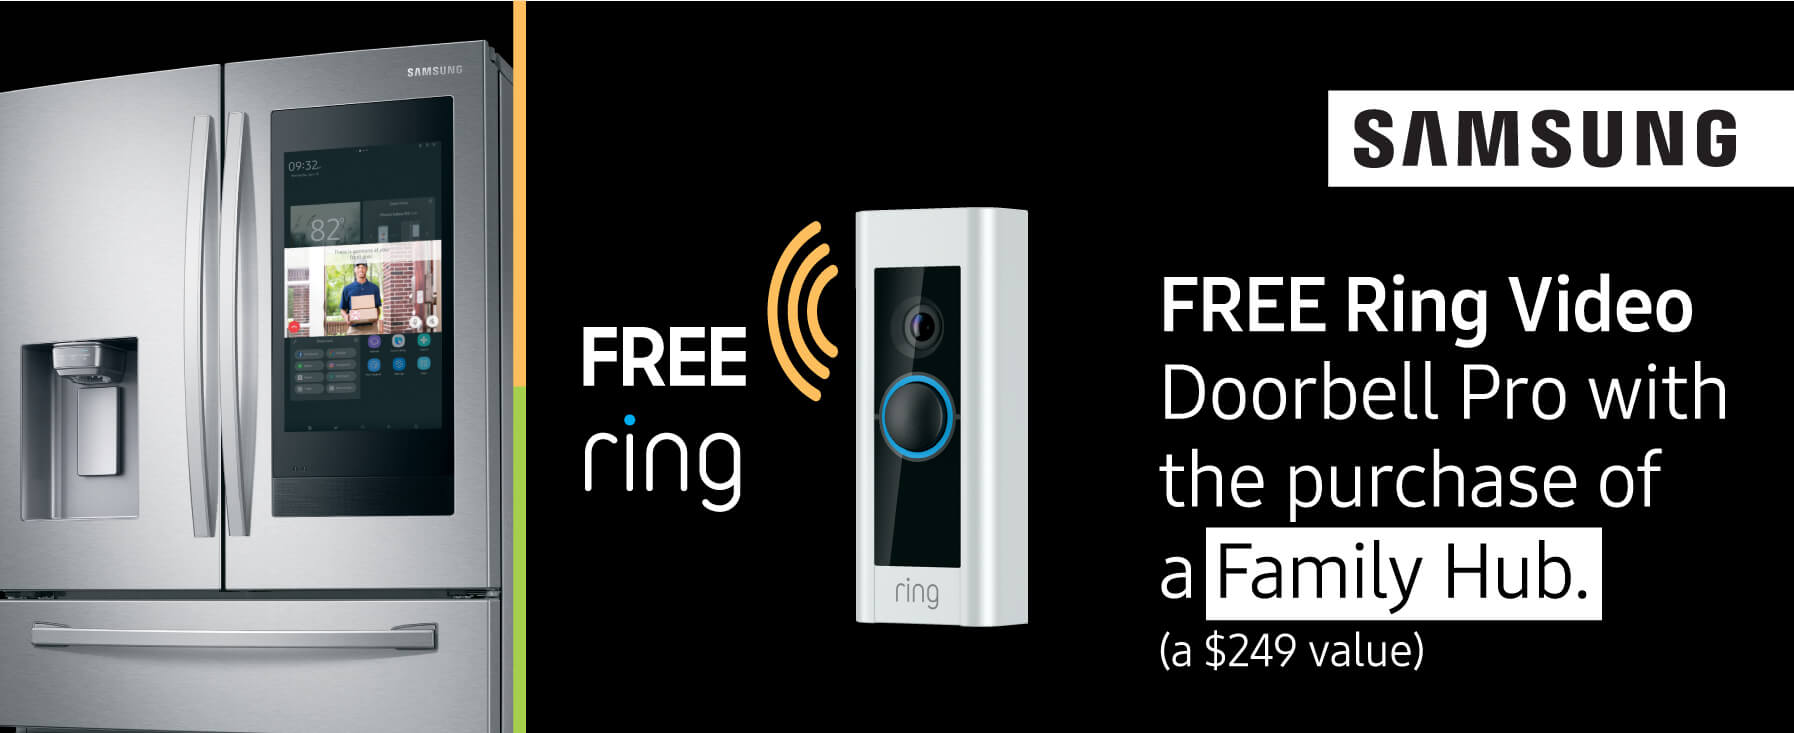 FREE Ring Video Doorbell Pro with the purchase of a Samsung Family Hub refrigerator.